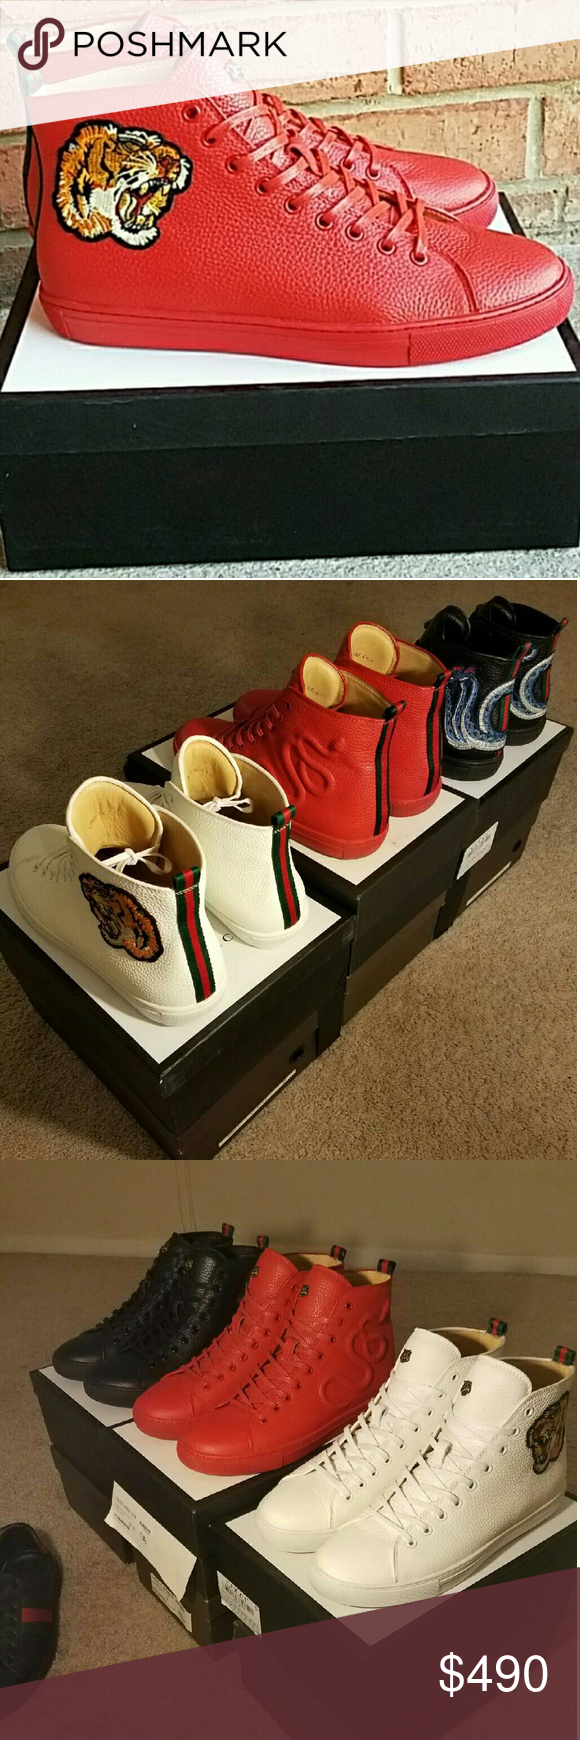 Men's Gucci HighTops New Men's Gucci HighTops New Size